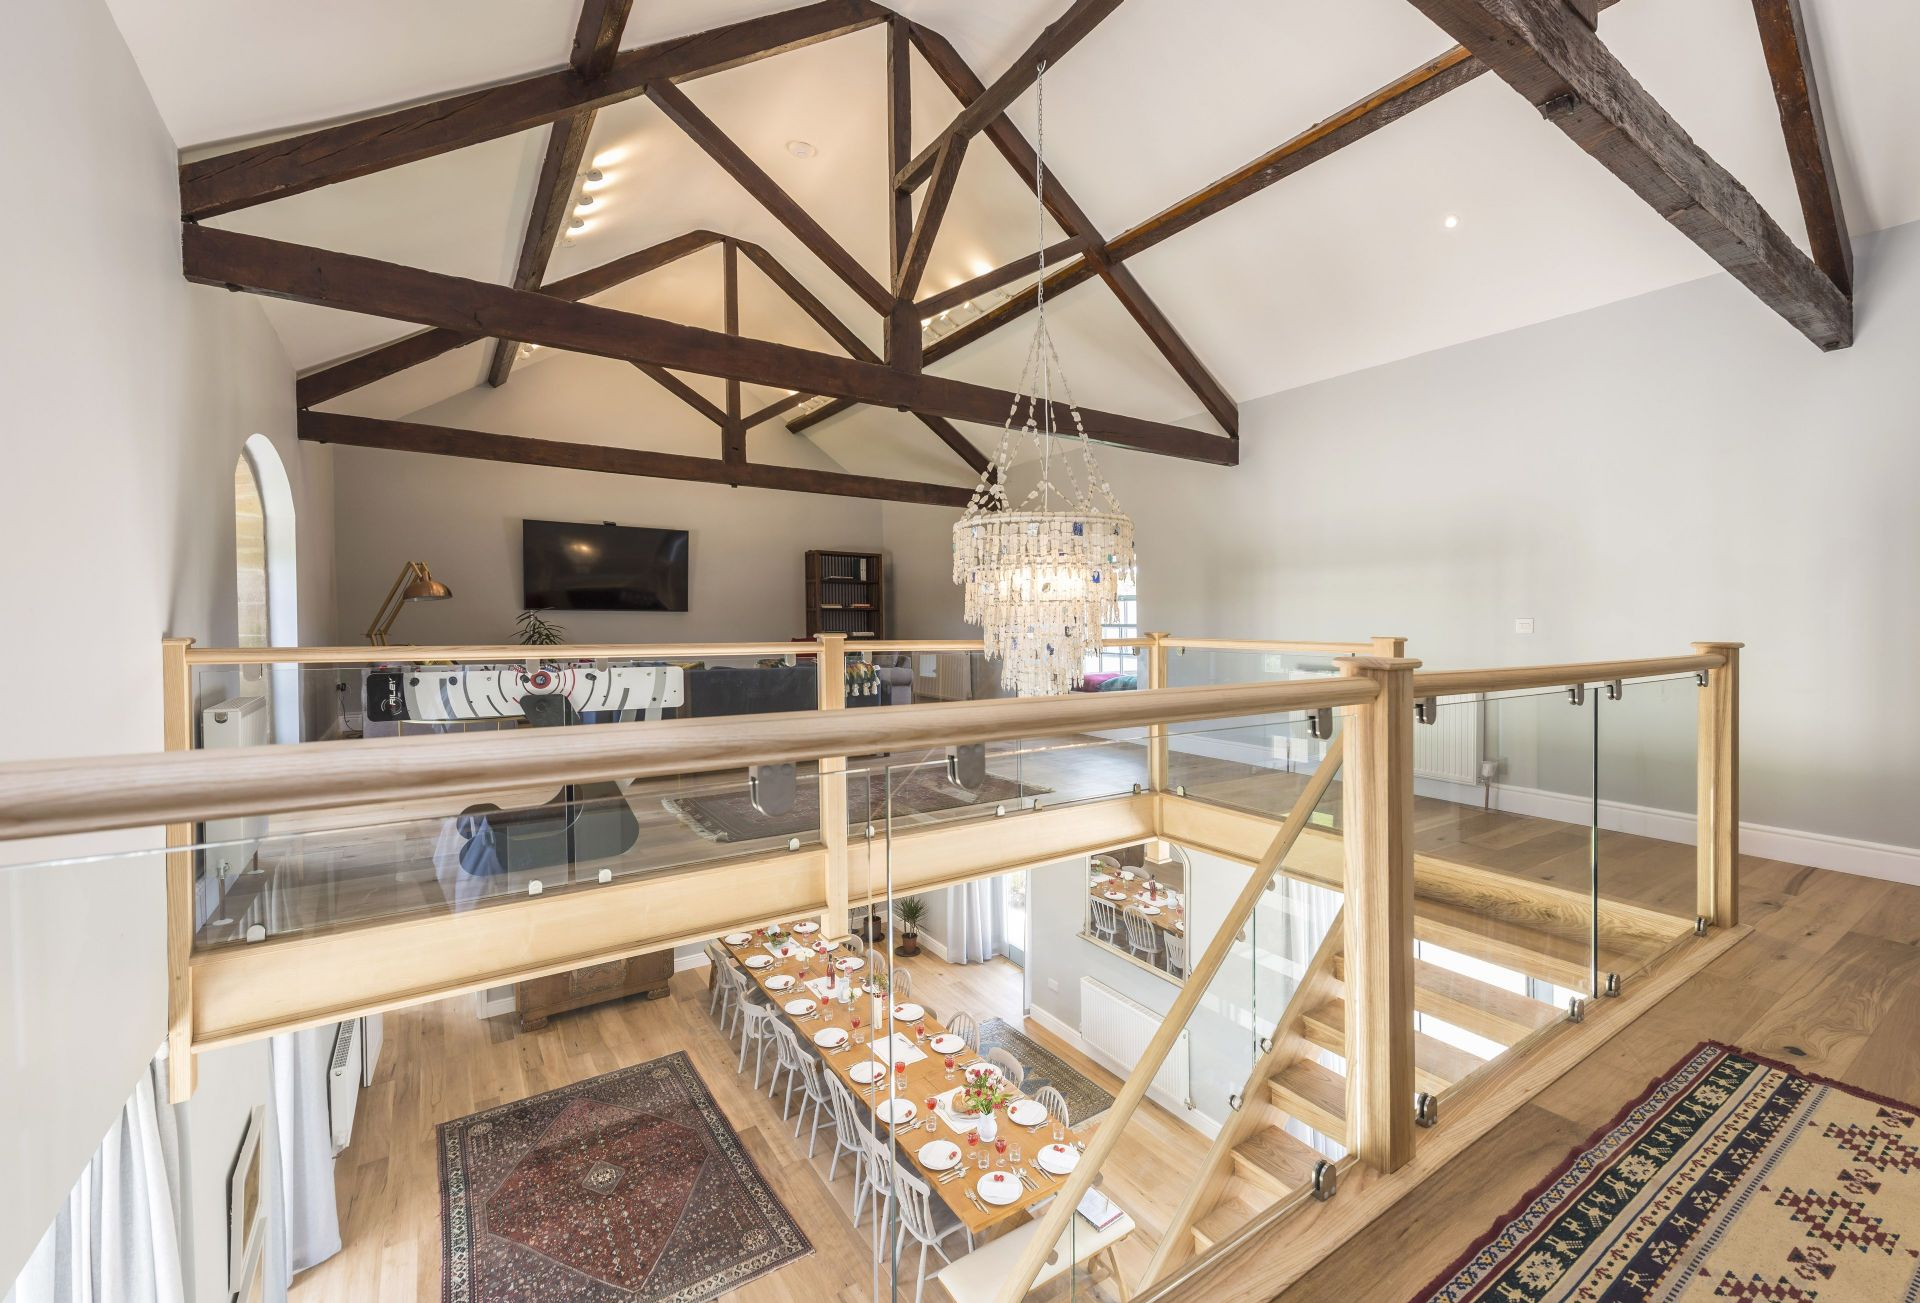 Stapleford Farm Cottages a british holiday cottage for 20 in ,